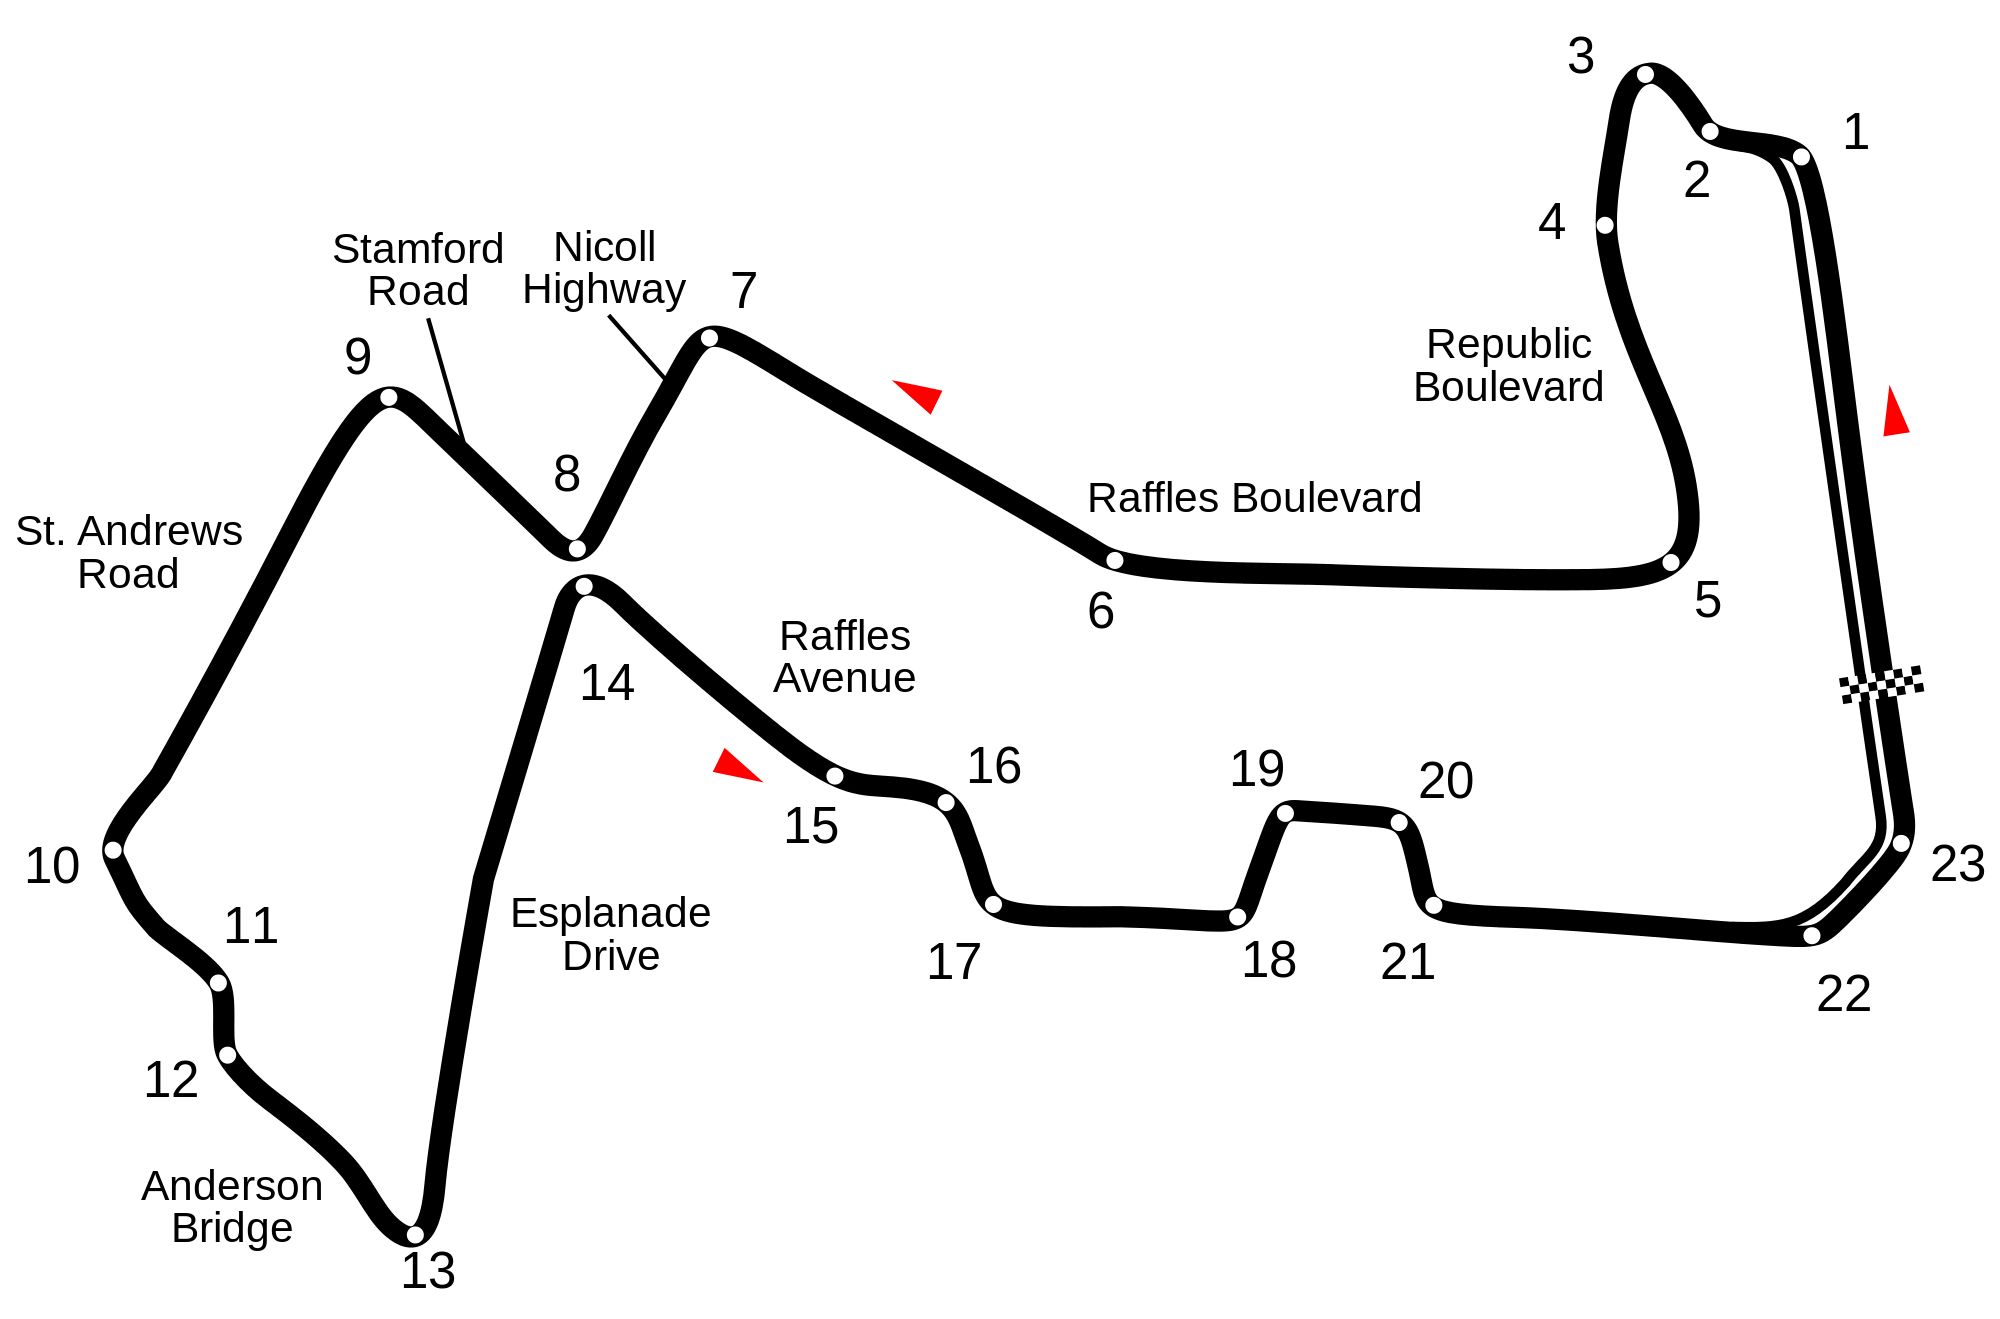 How To Watch Singapore Grand Prix Online Without Cable